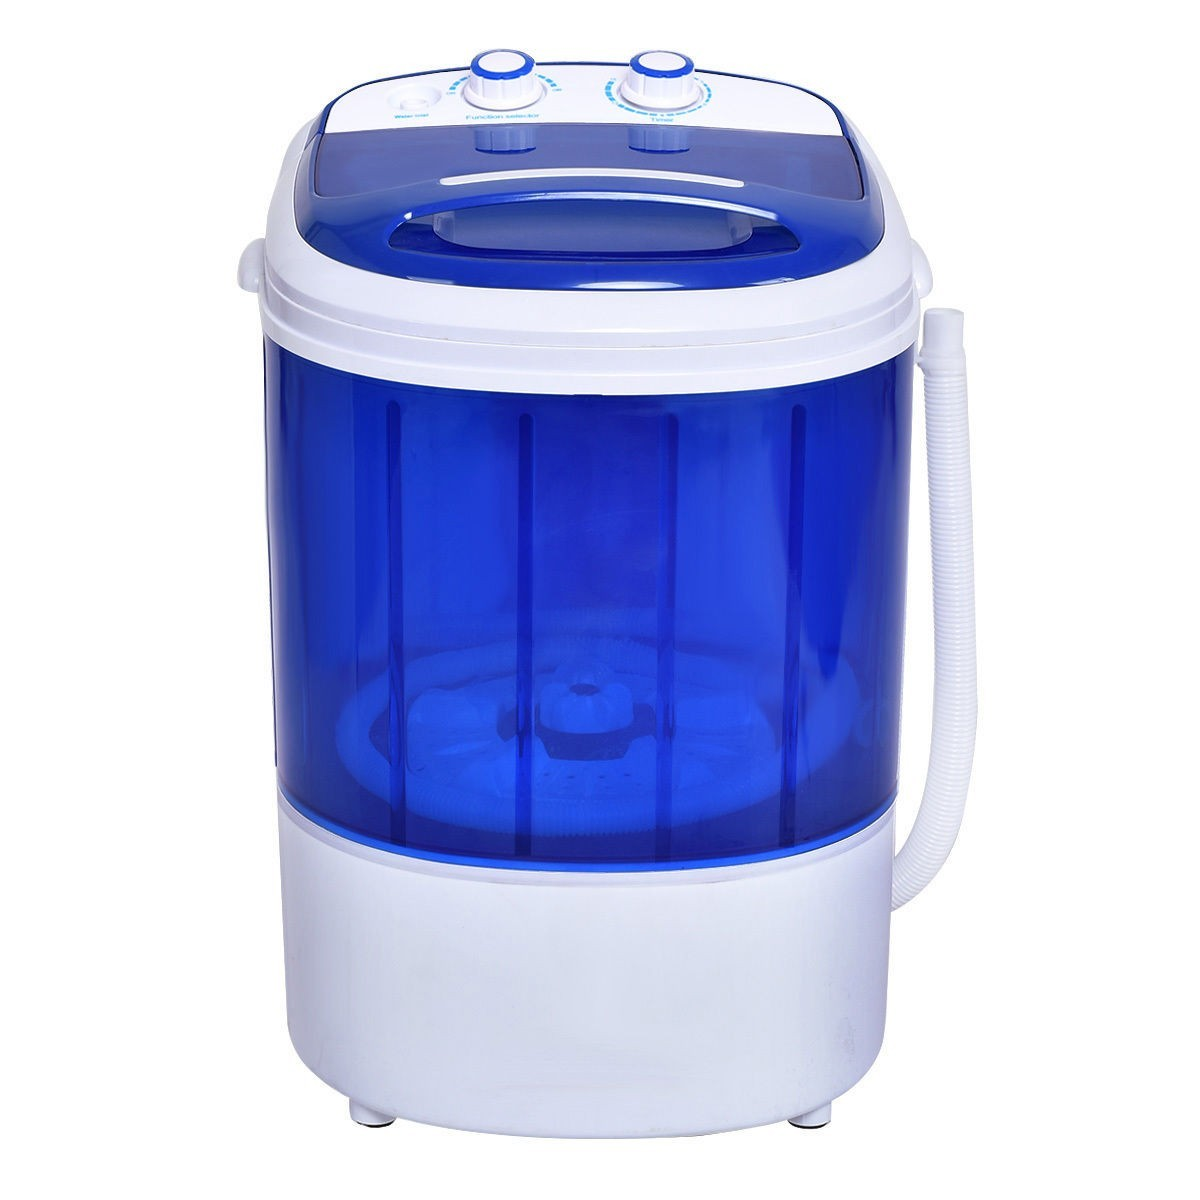 Mini Portable Small Washing Machine Laundry Clothes Washer